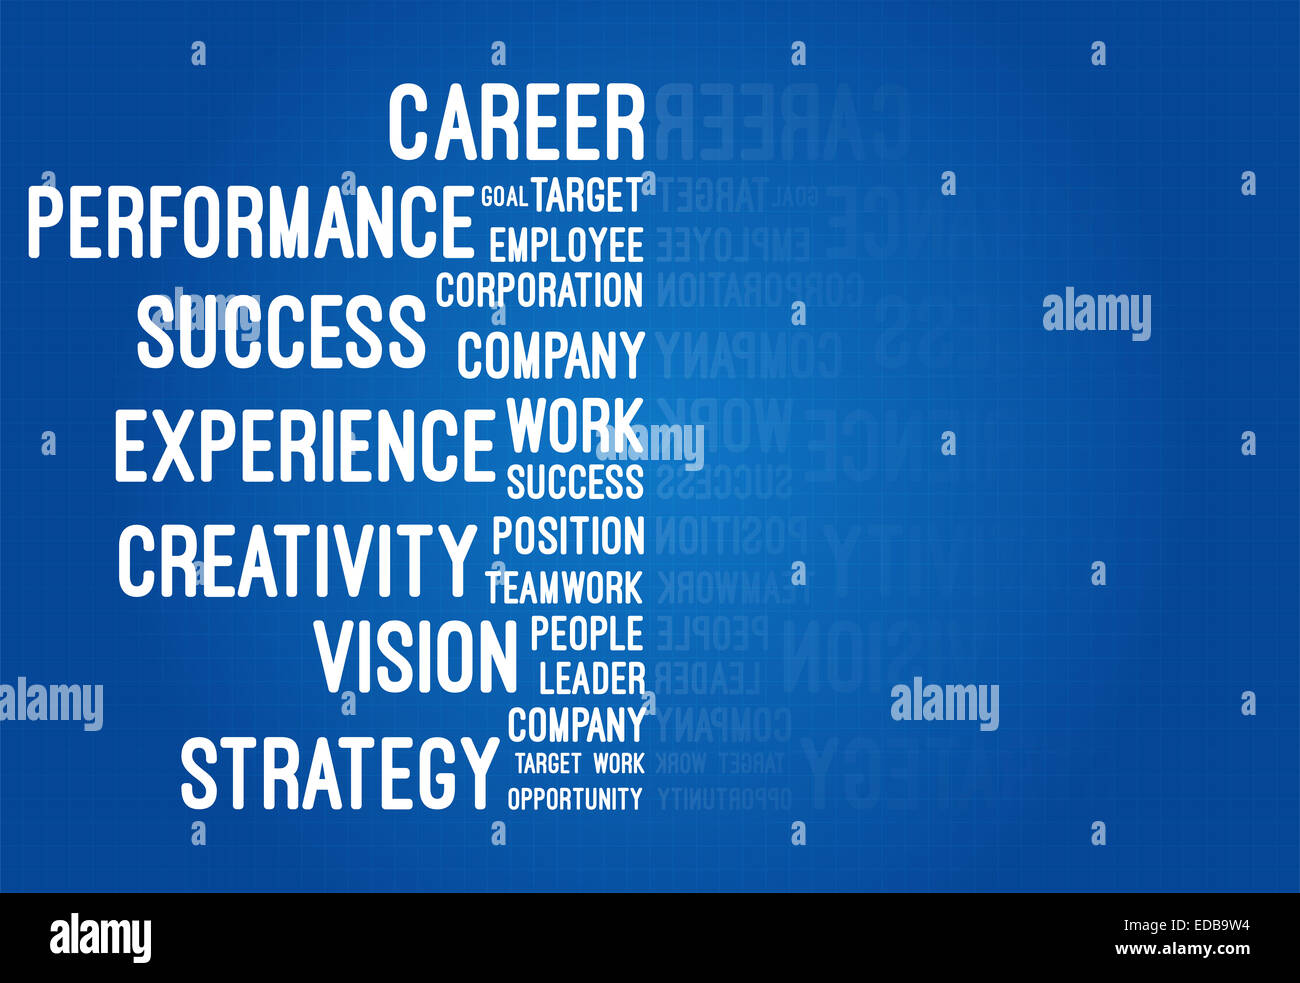 Business and career word cloud on blueprint stock photo 77081232 business and career word cloud on blueprint malvernweather Image collections